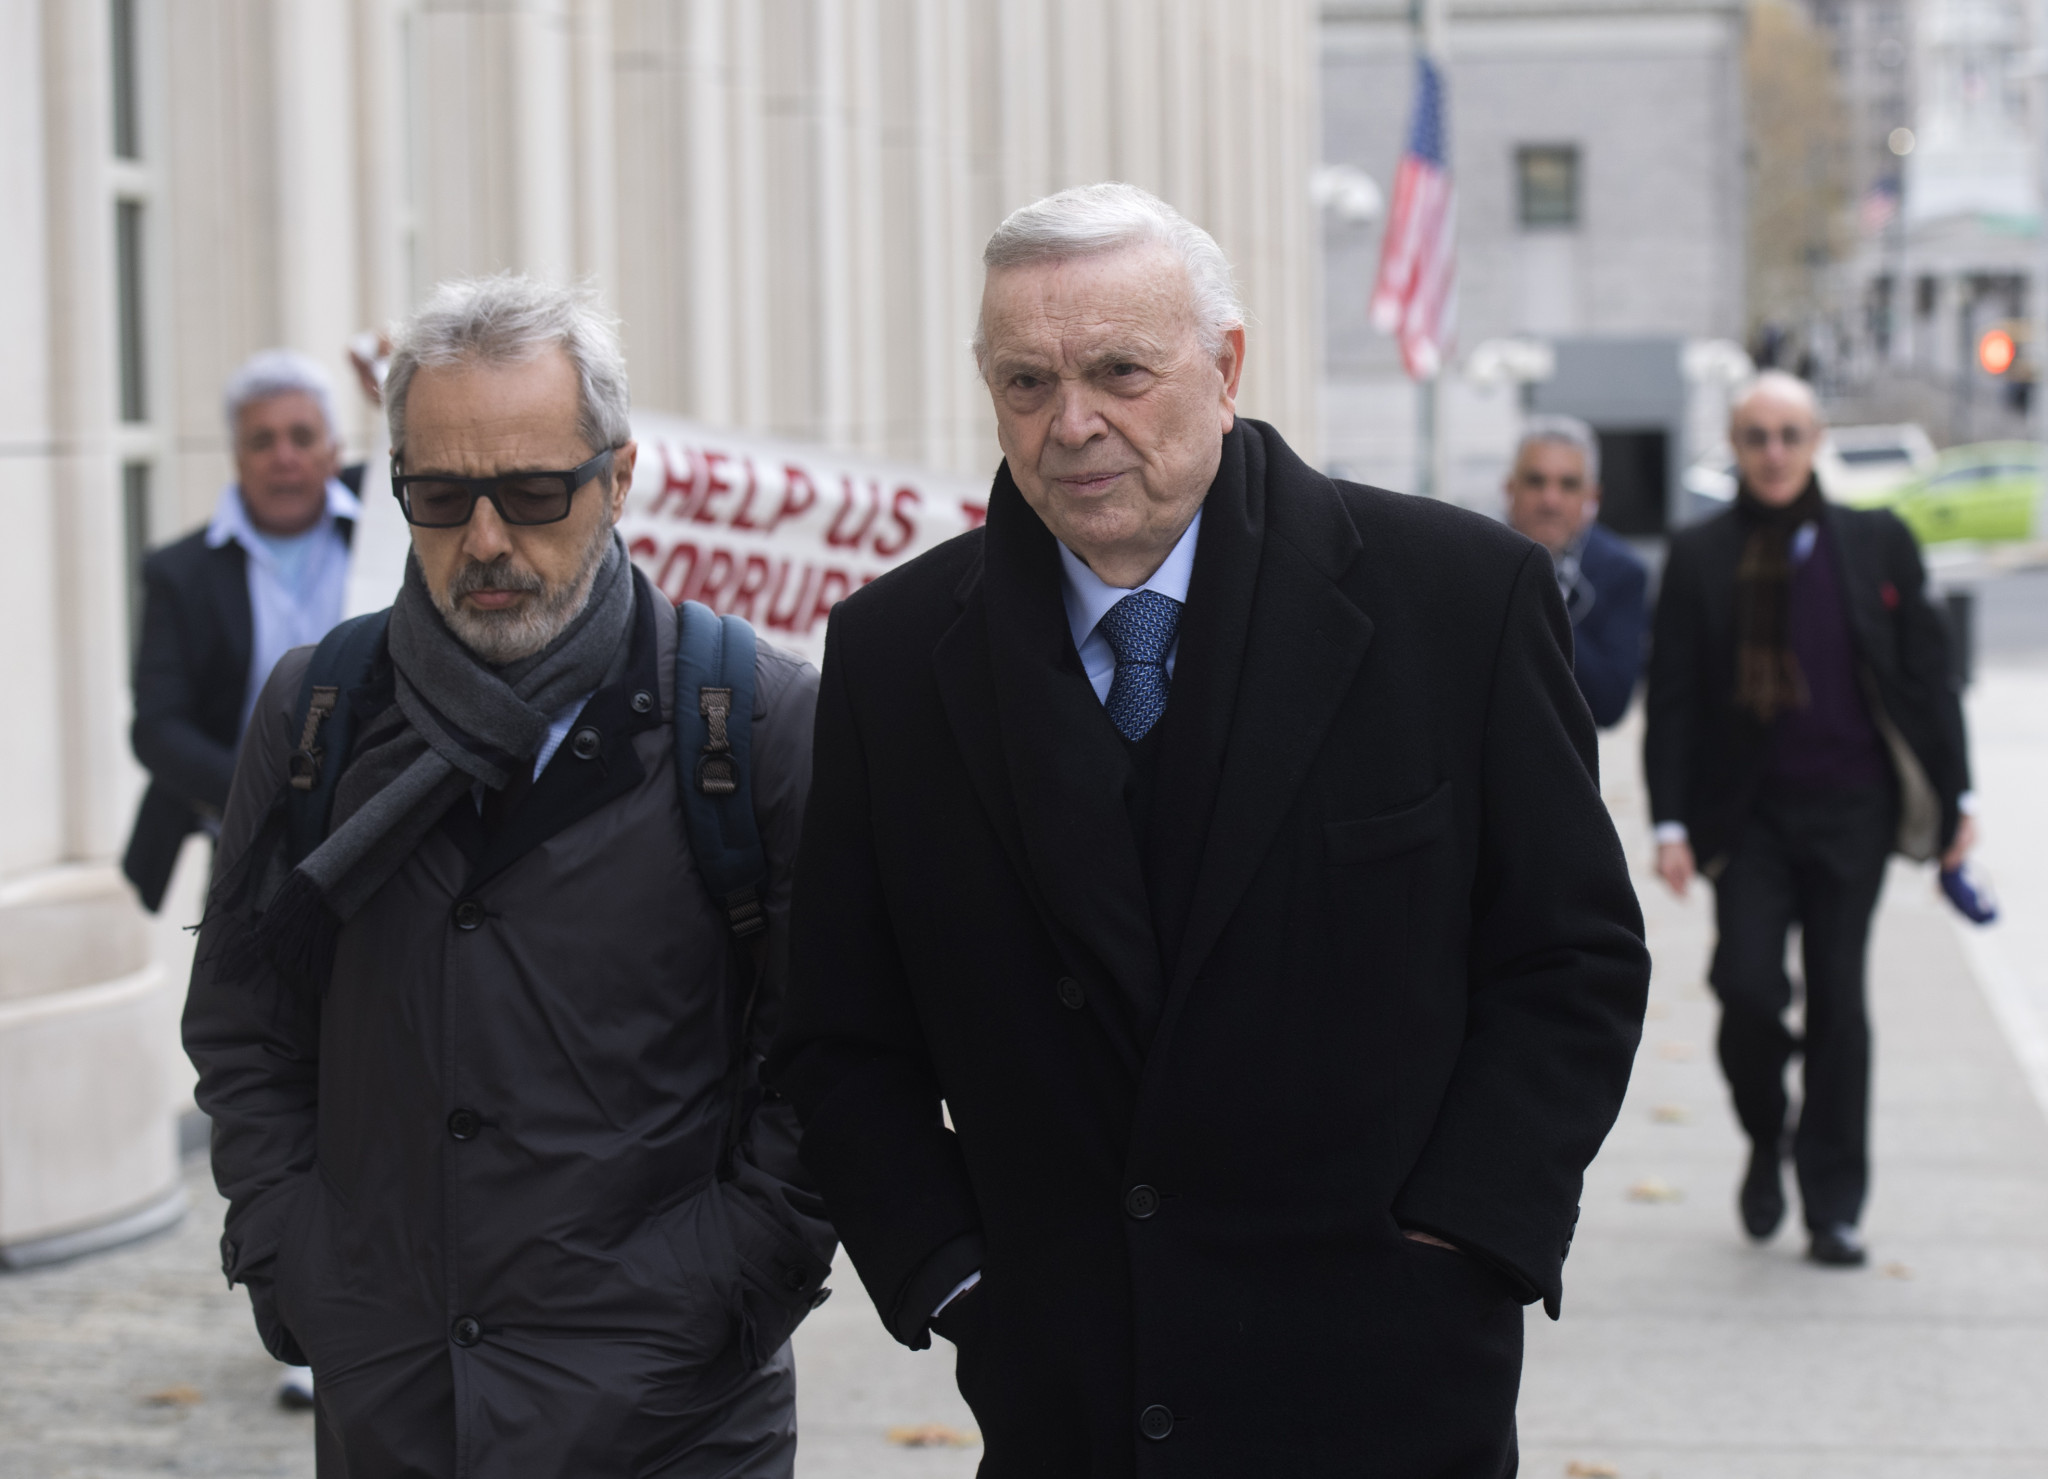 Jose Maria Marin, right, has been sentenced to four years in prison ©Getty Images